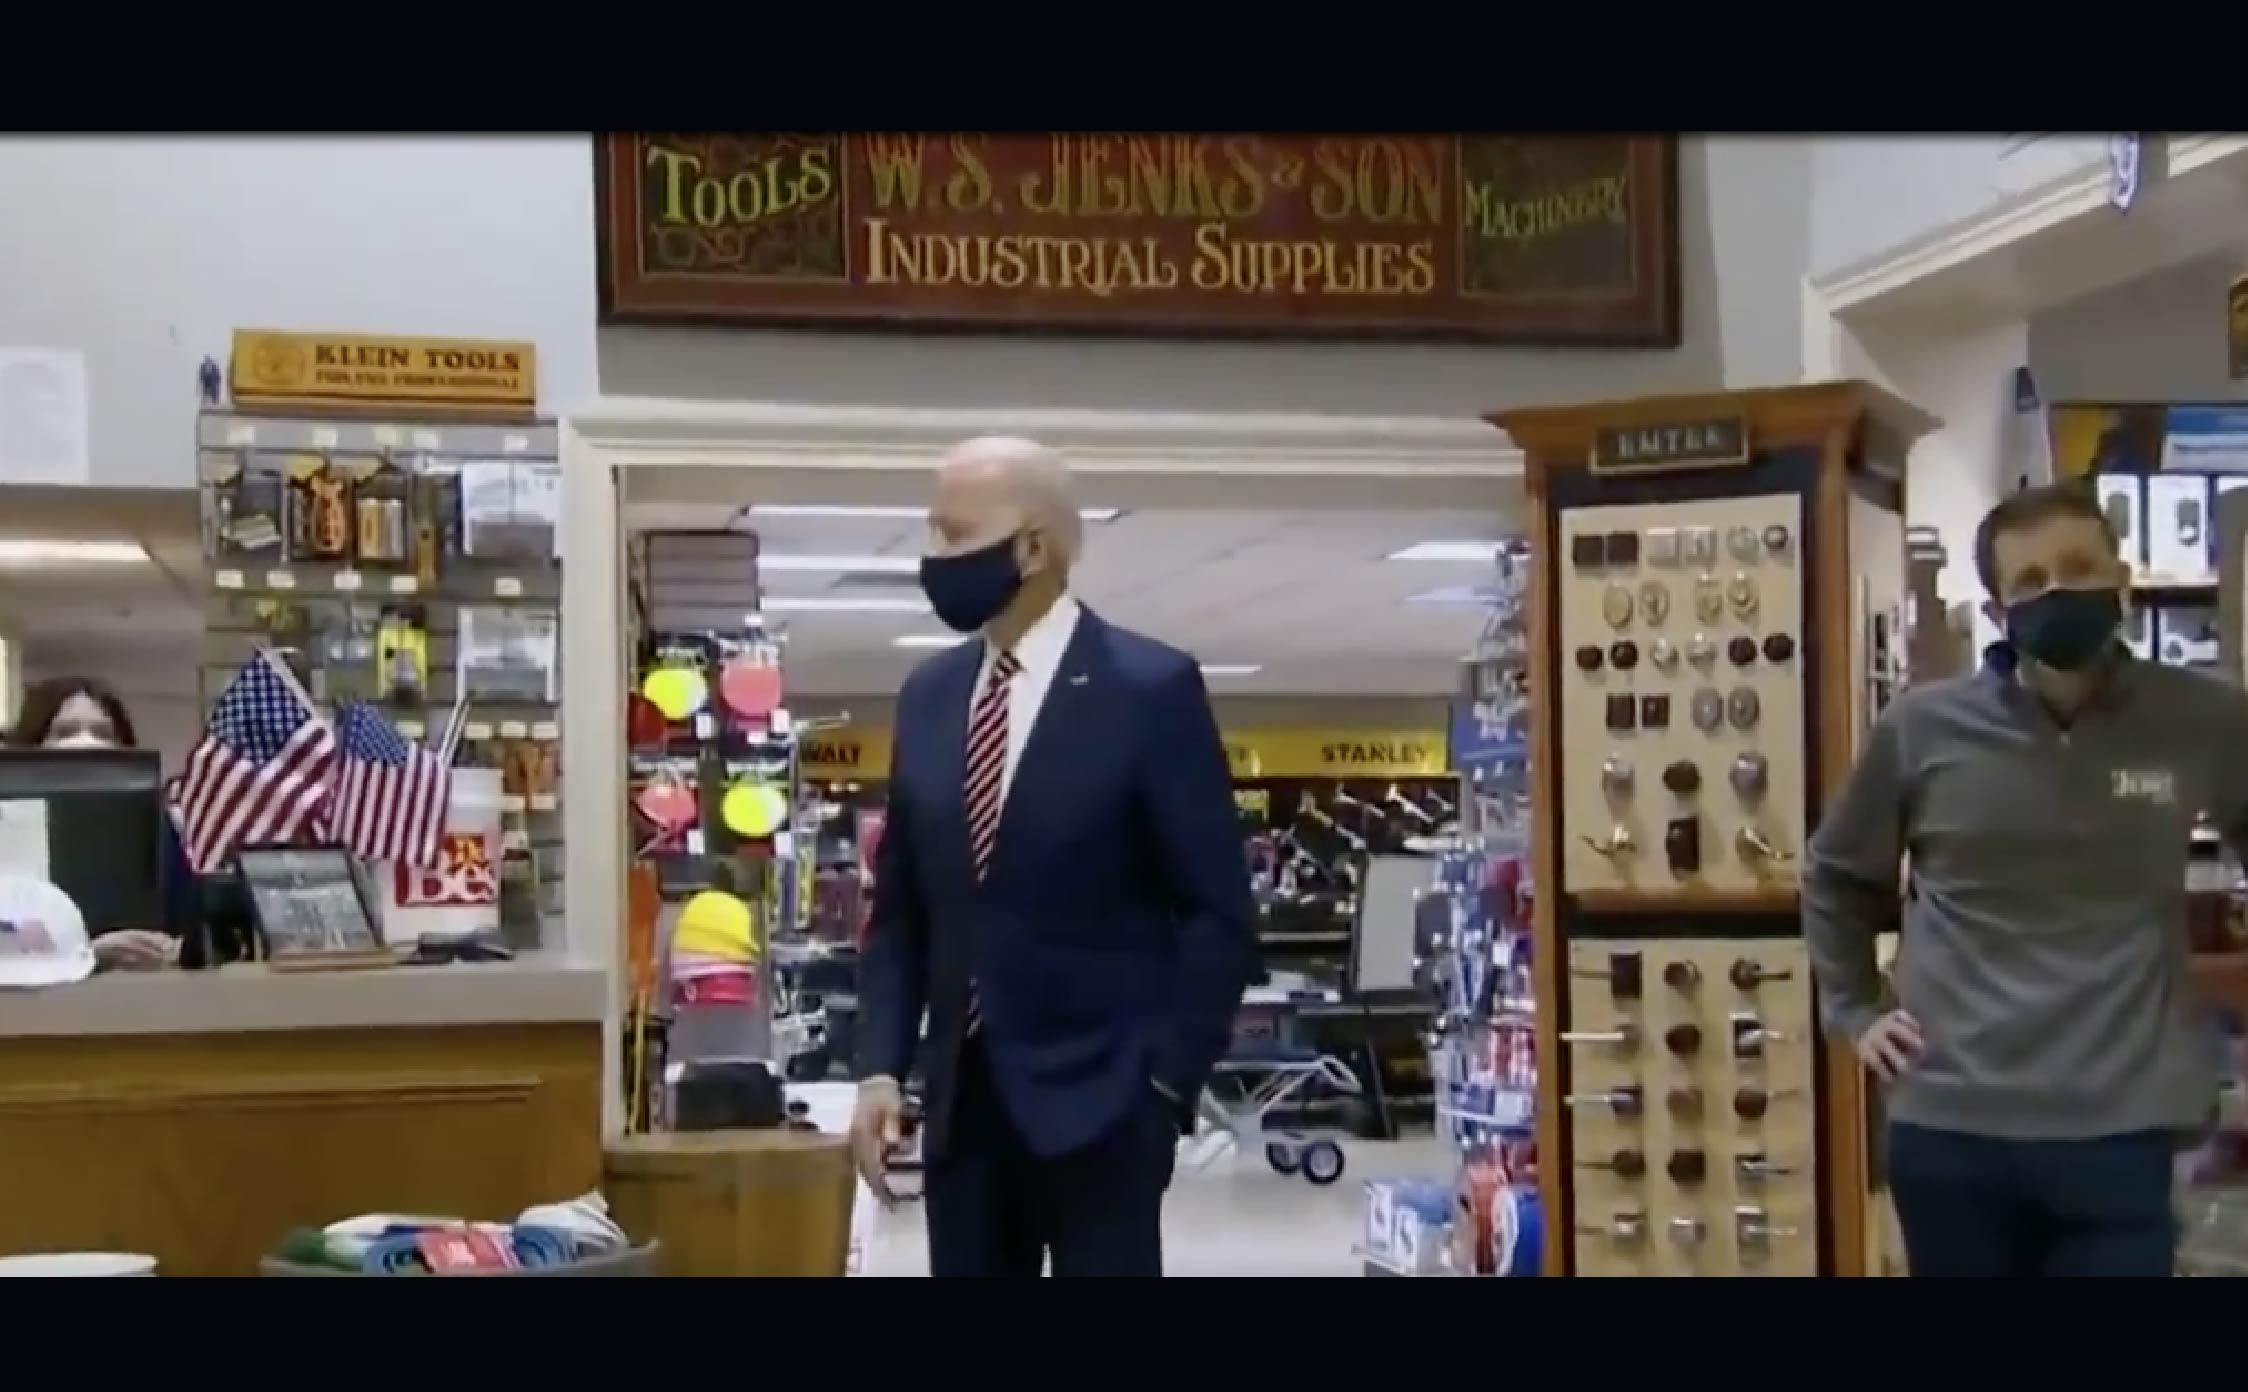 [VIDEO] Joe Looks Lost as Staffers Aggressively Take Over During Hardware Store Visit